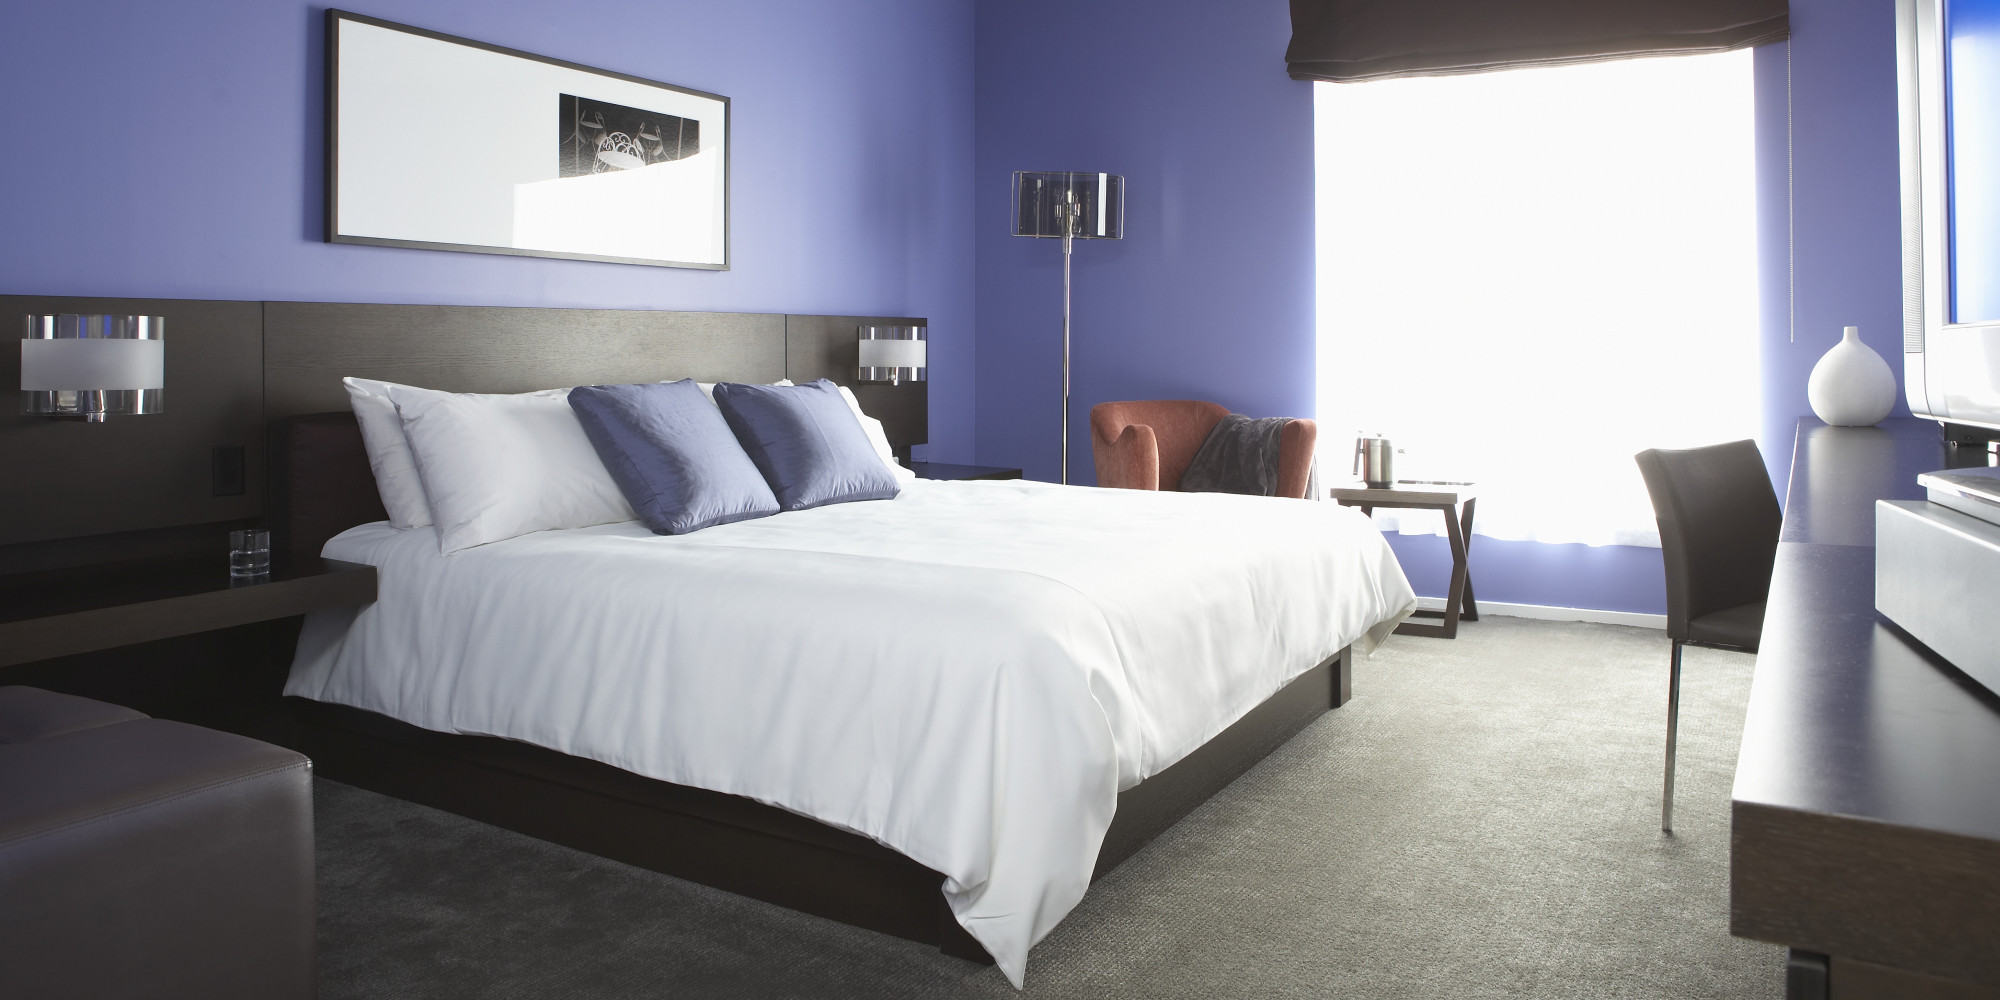 10 things to do in hotels besides sleep huffpost. Black Bedroom Furniture Sets. Home Design Ideas